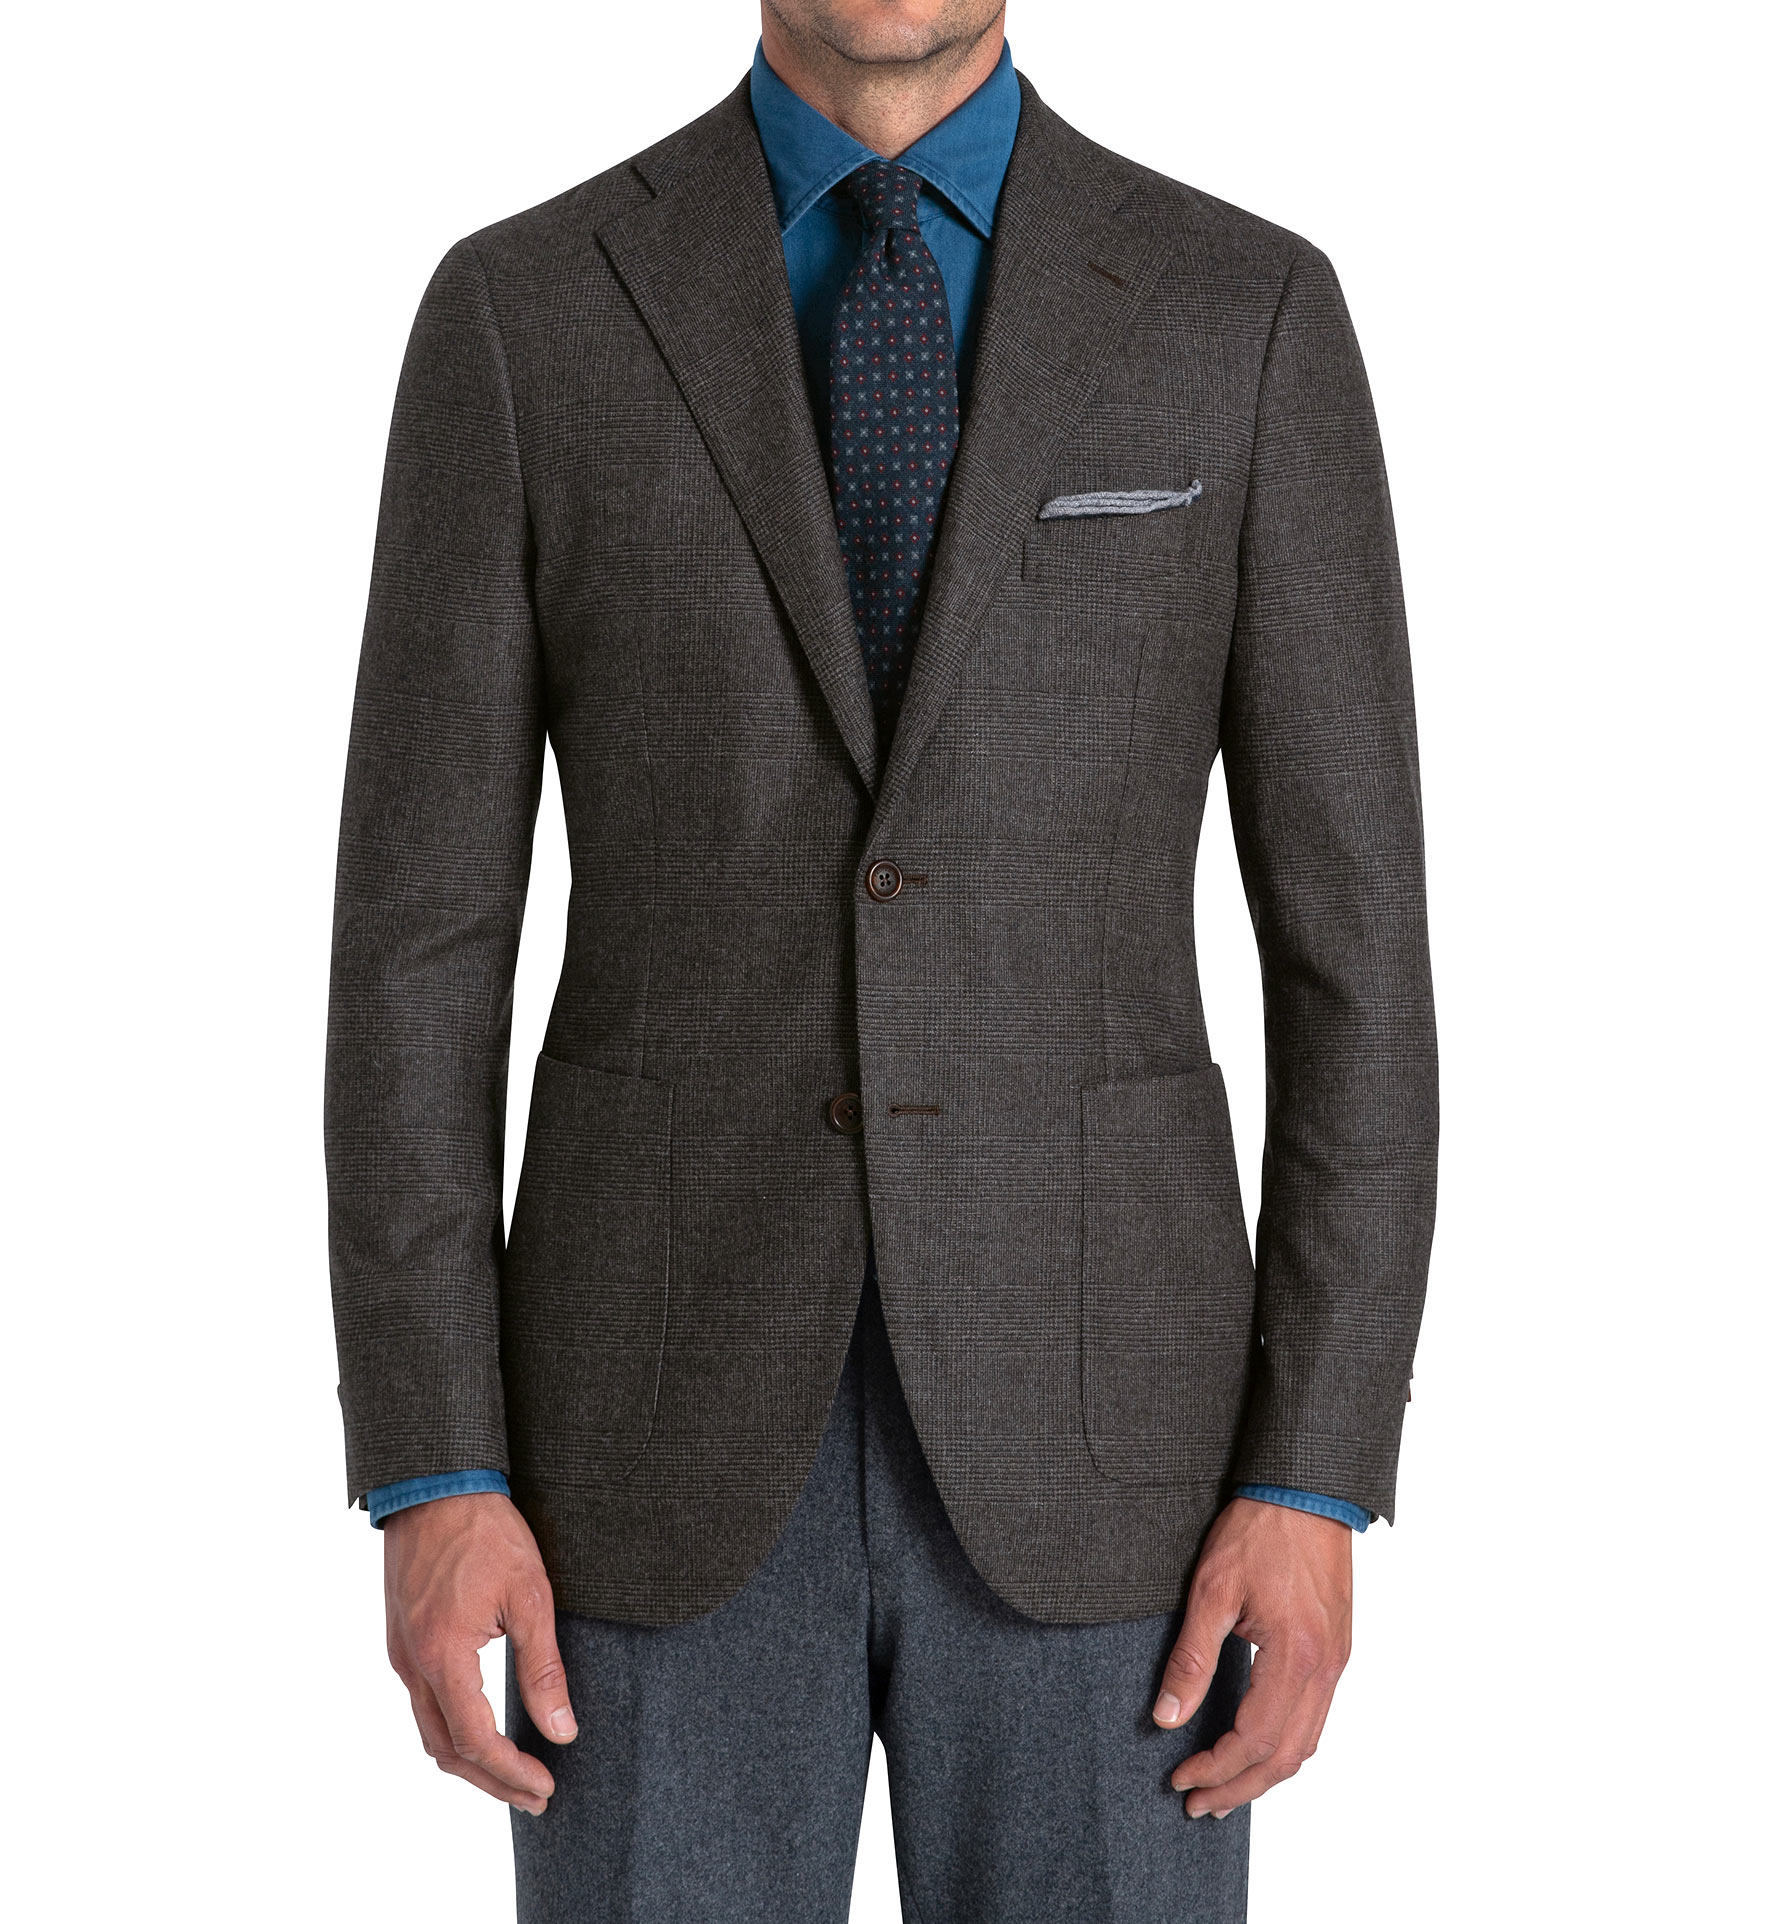 Zoom Image of Bedford Chestnut Glen Plaid Lightweight Wool Jacket